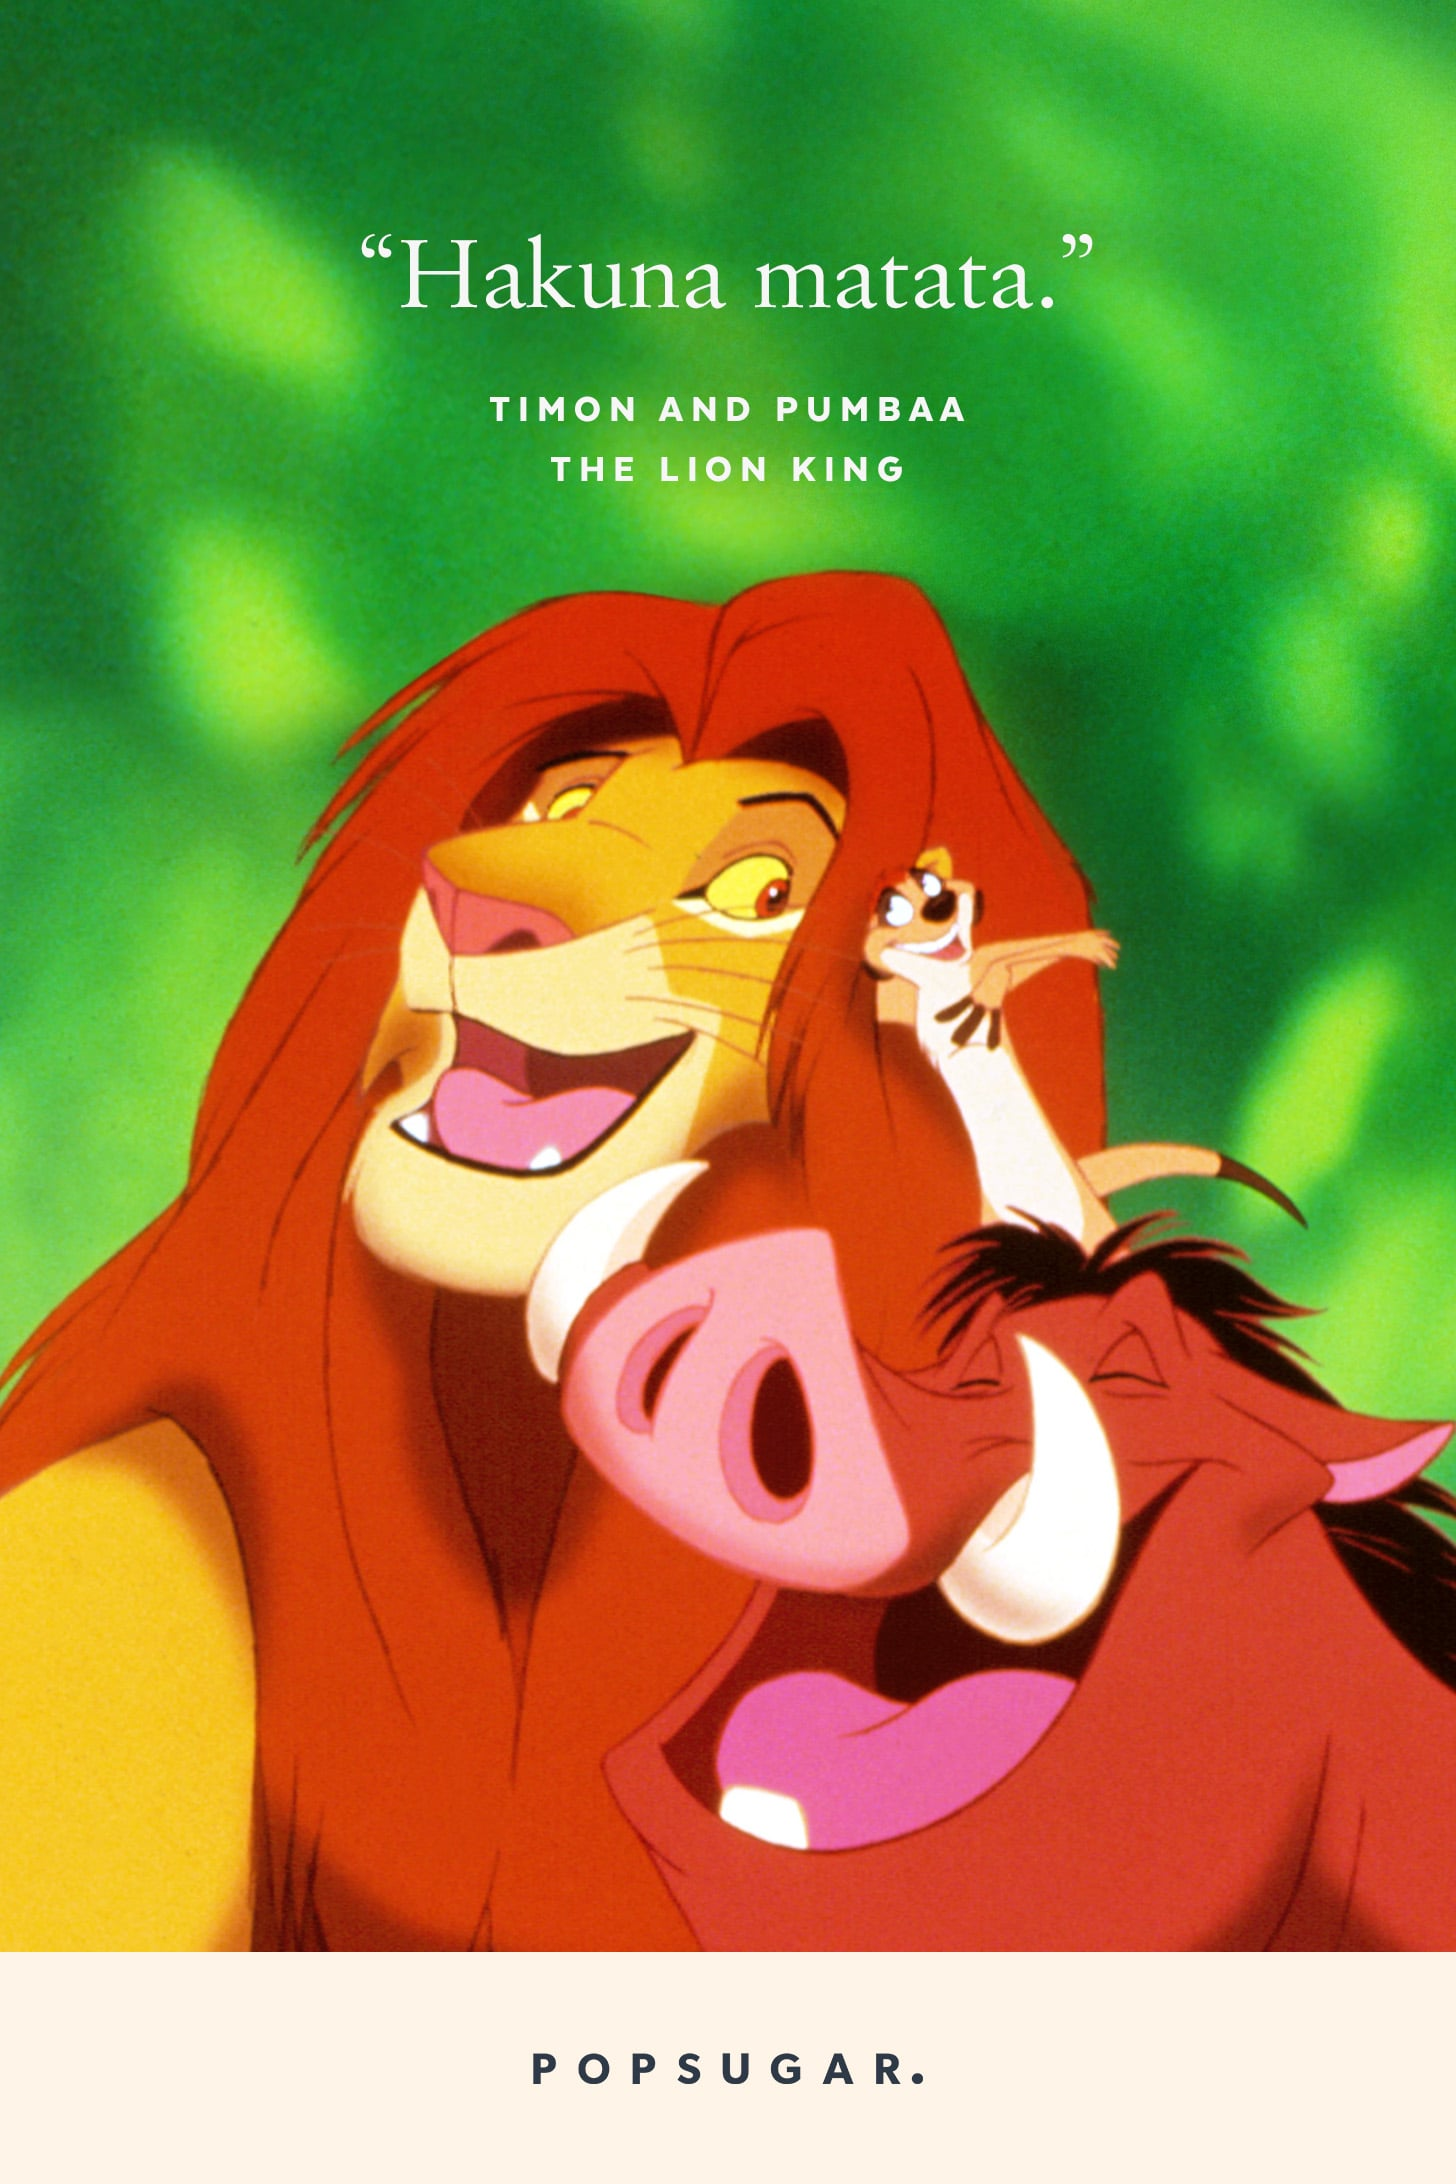 Hakuna Matata Timon And Pumbaa The Lion King 44 Emotional And Beautiful Disney Quotes That Are Guaranteed To Make You Cry Popsugar Smart Living Photo 36